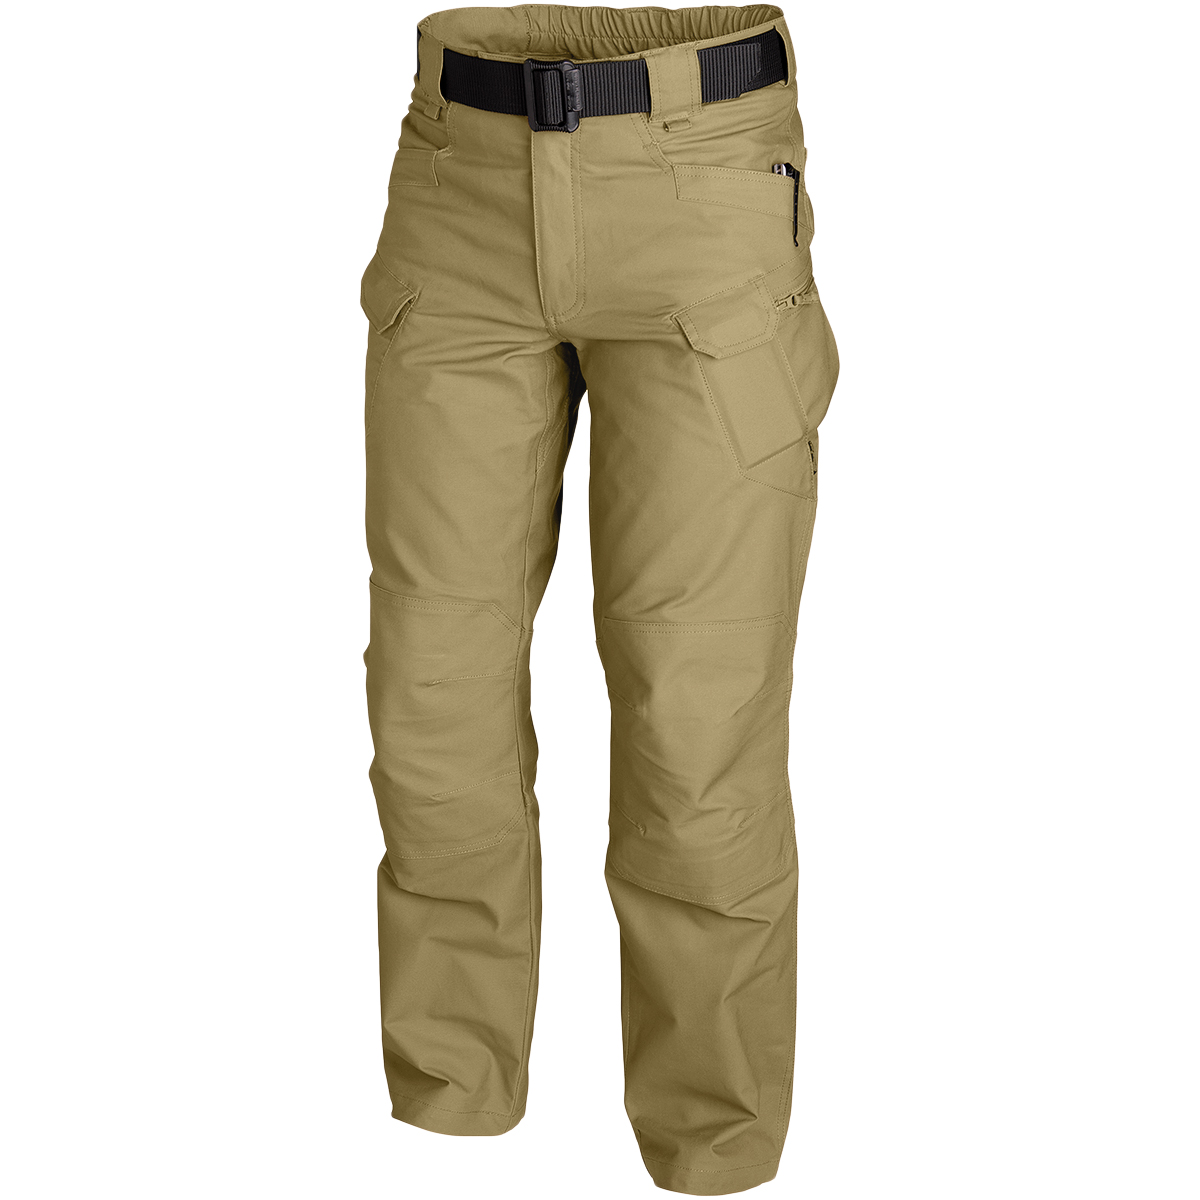 Details about Helikon Utp Tactical Combat Mens Trousers Police Security Cargo  Pants Coyote Tan e86bbe39d12